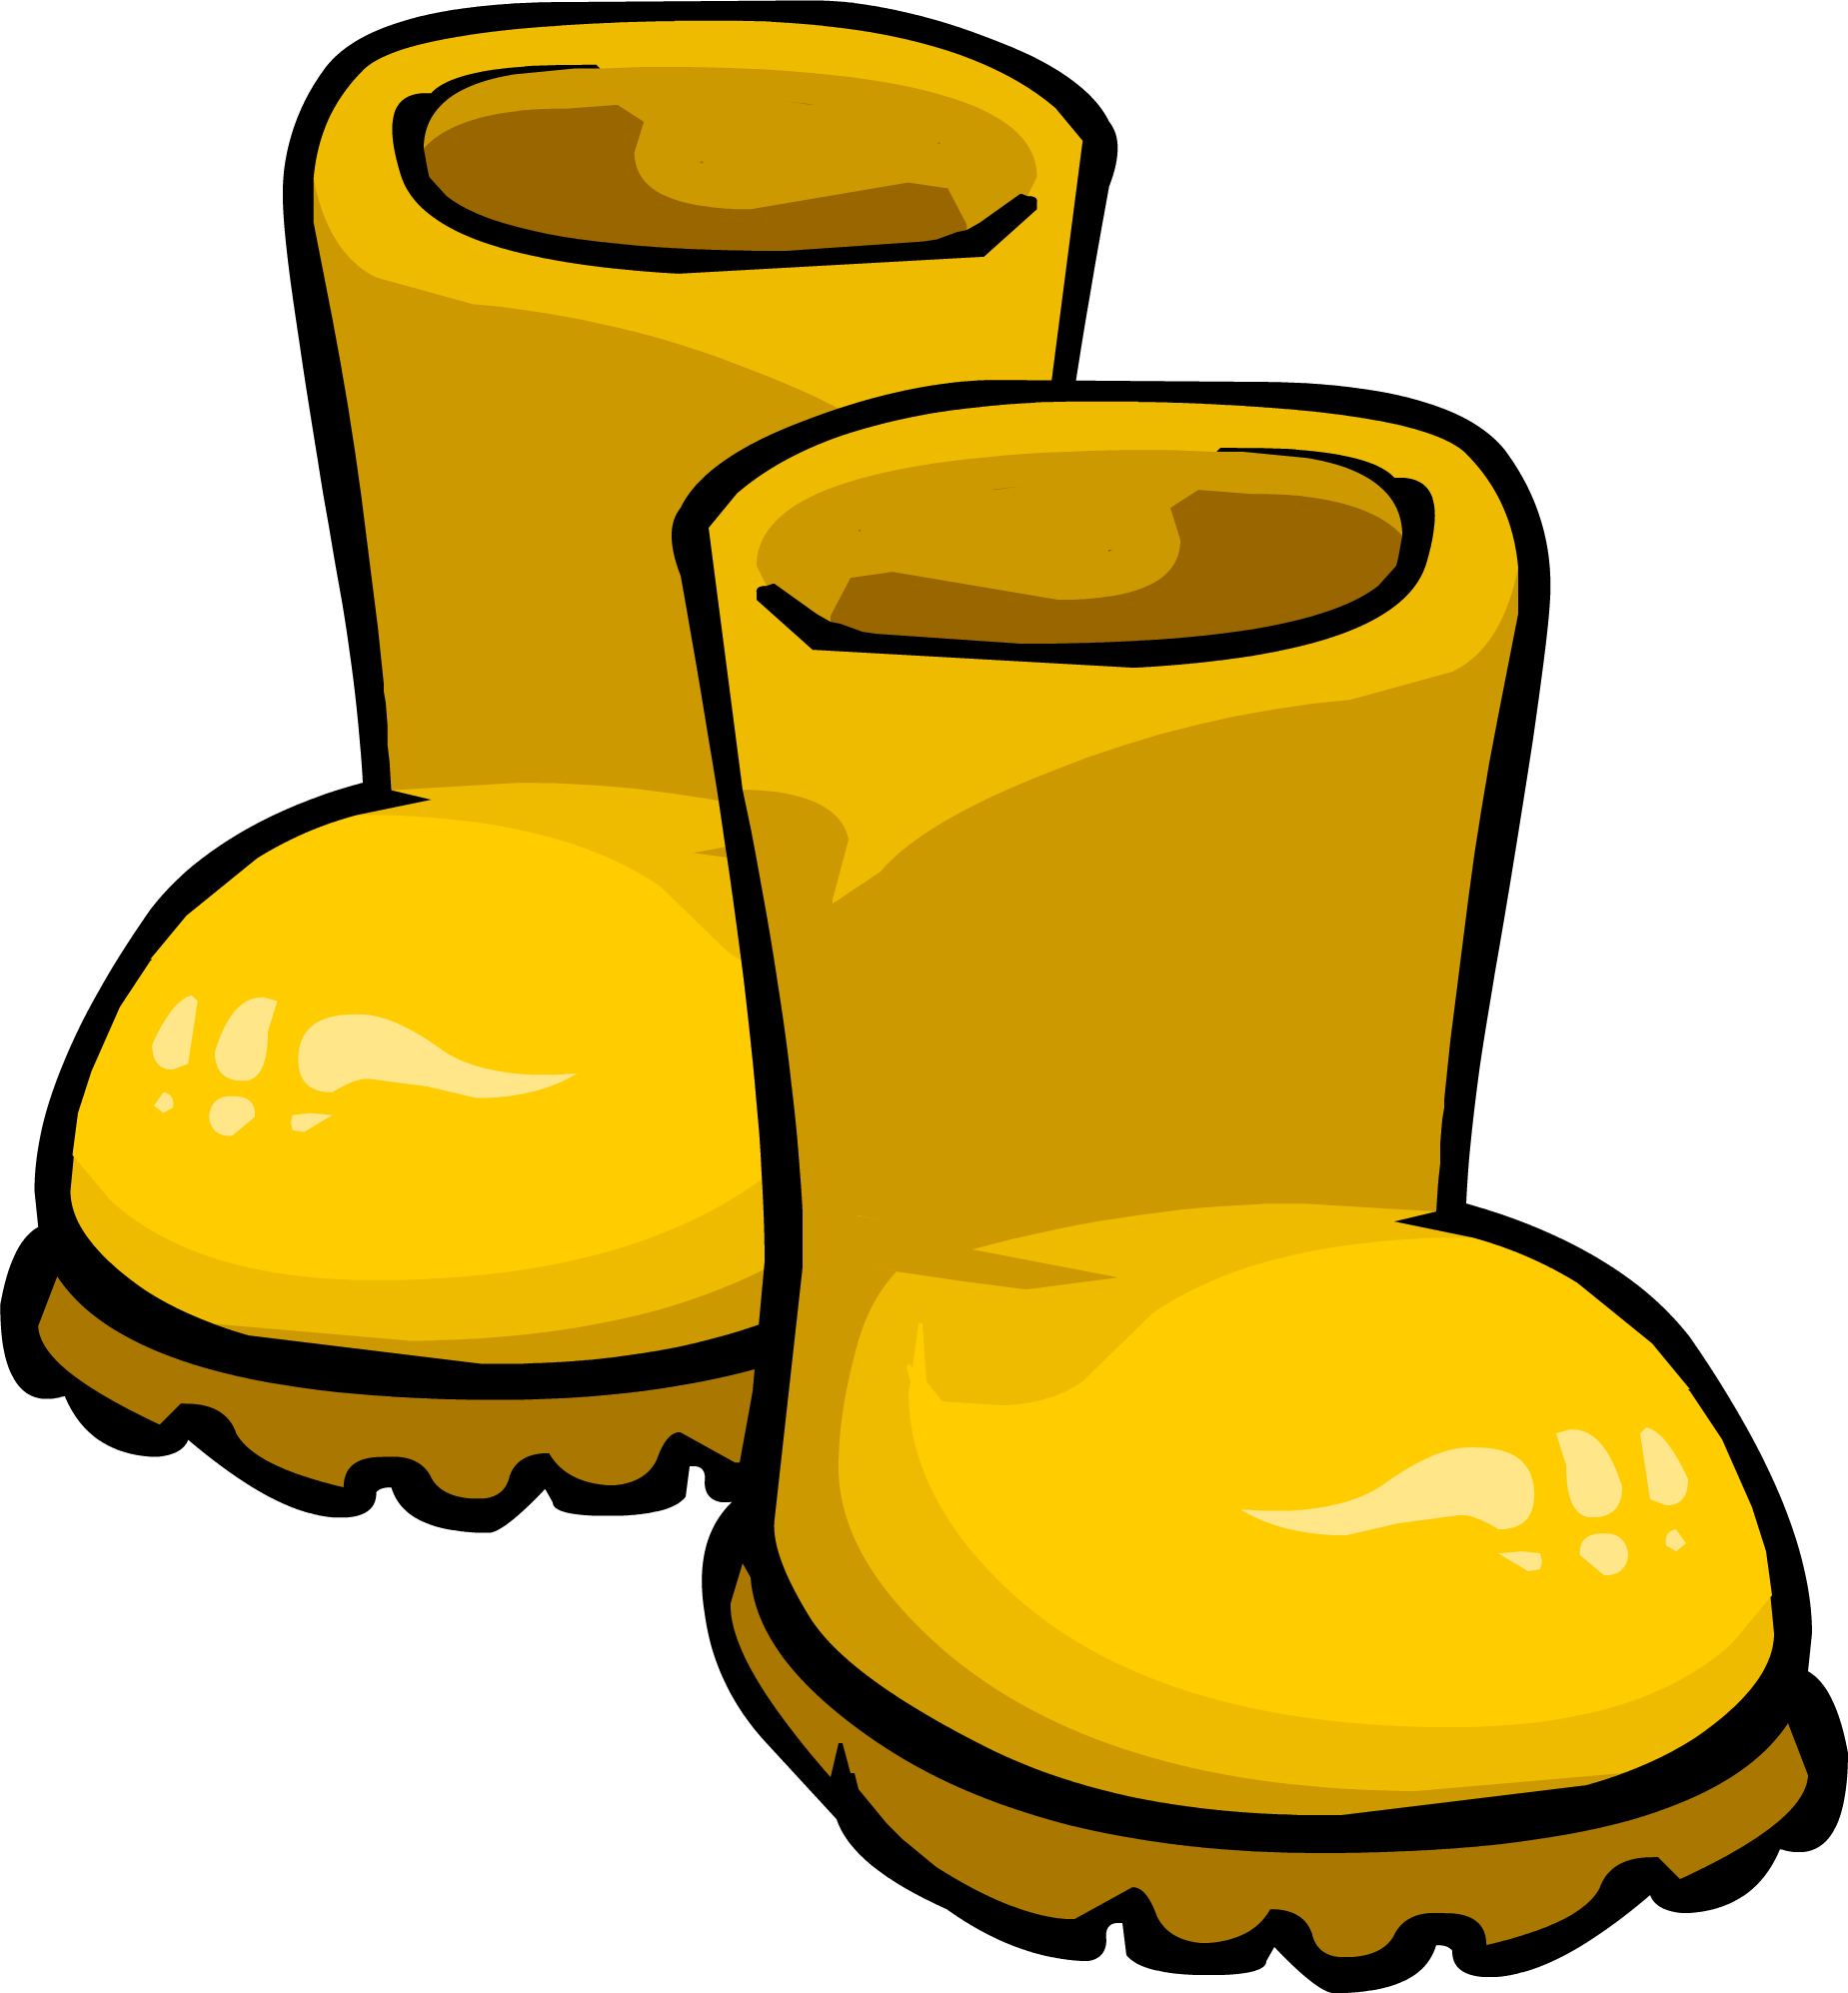 png library download Yellow rubber club penguin. Boots clipart rain gear